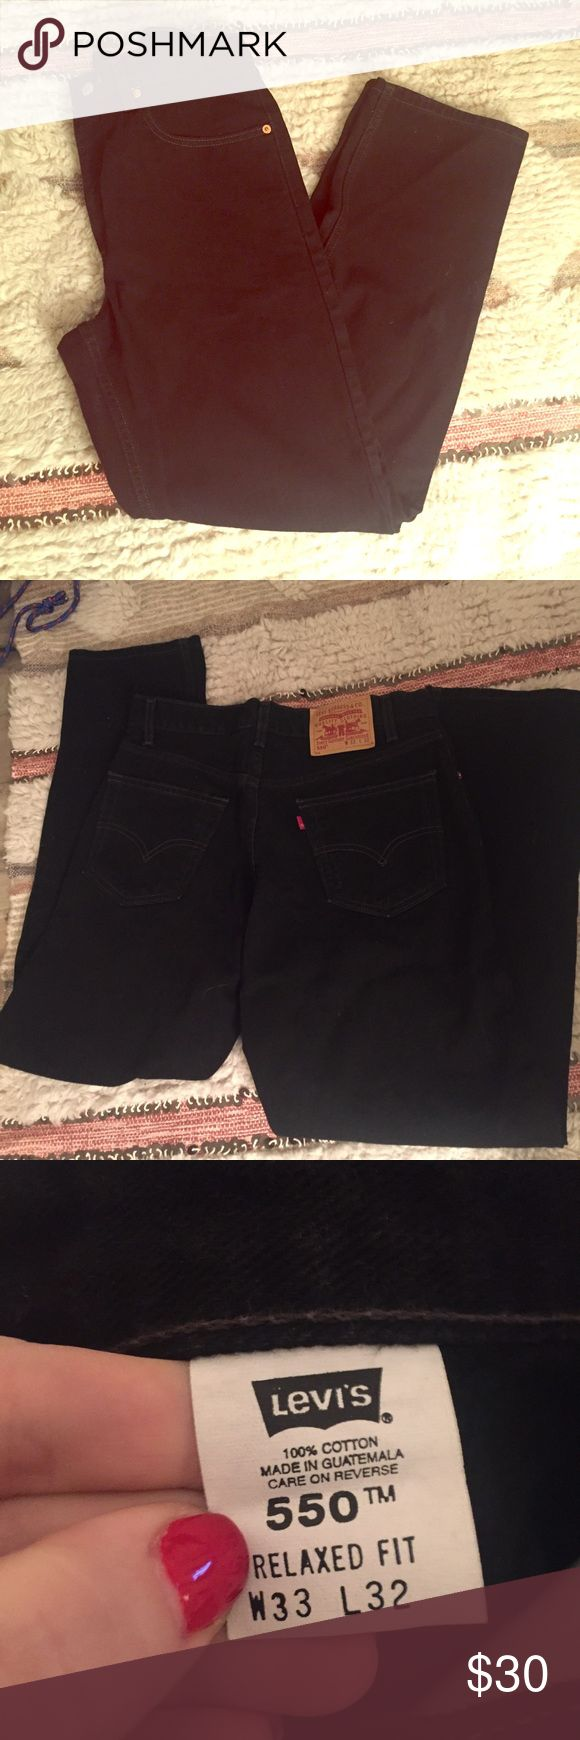 Black Levi's 550 relaxed fit jeans Black denim men's jeans 550 relaxed fit jeans. Sits at waist. Loose through hip and thigh. Straight leg. 33x32. Worn once Levi's Jeans Relaxed